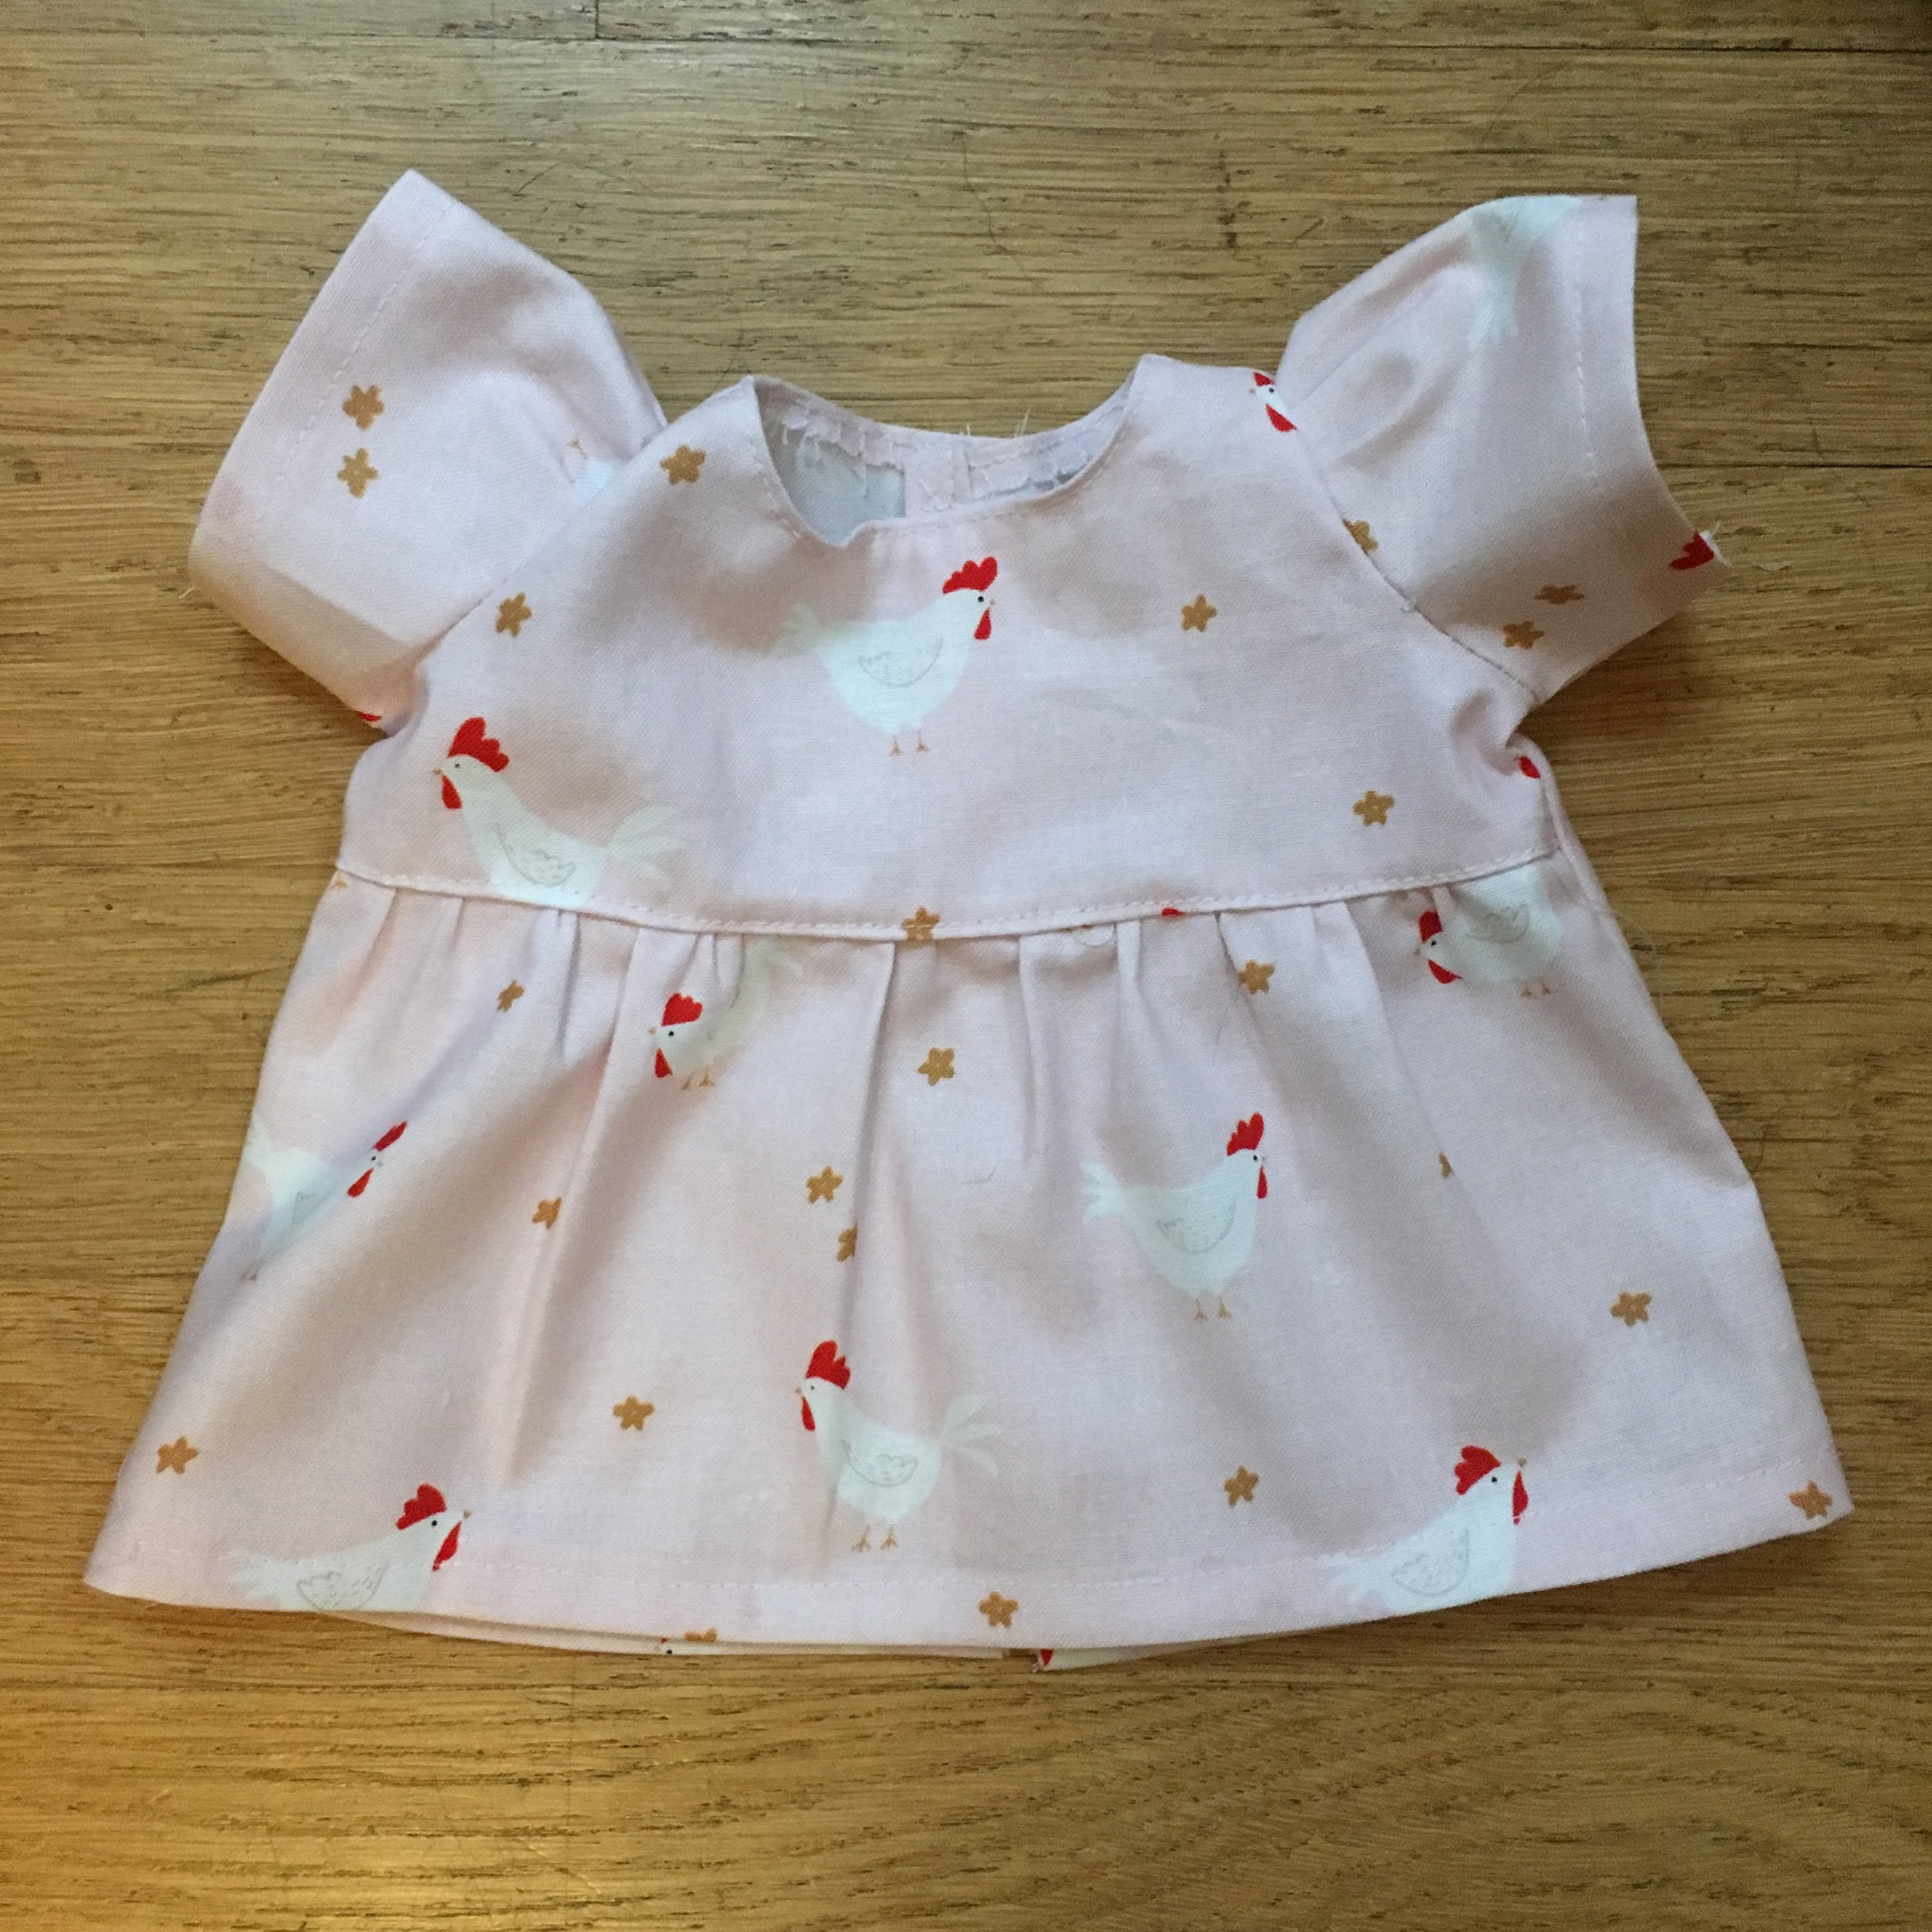 Tutorial  and pattern  to sew a dress for a  Bamboletta Baby Doll.